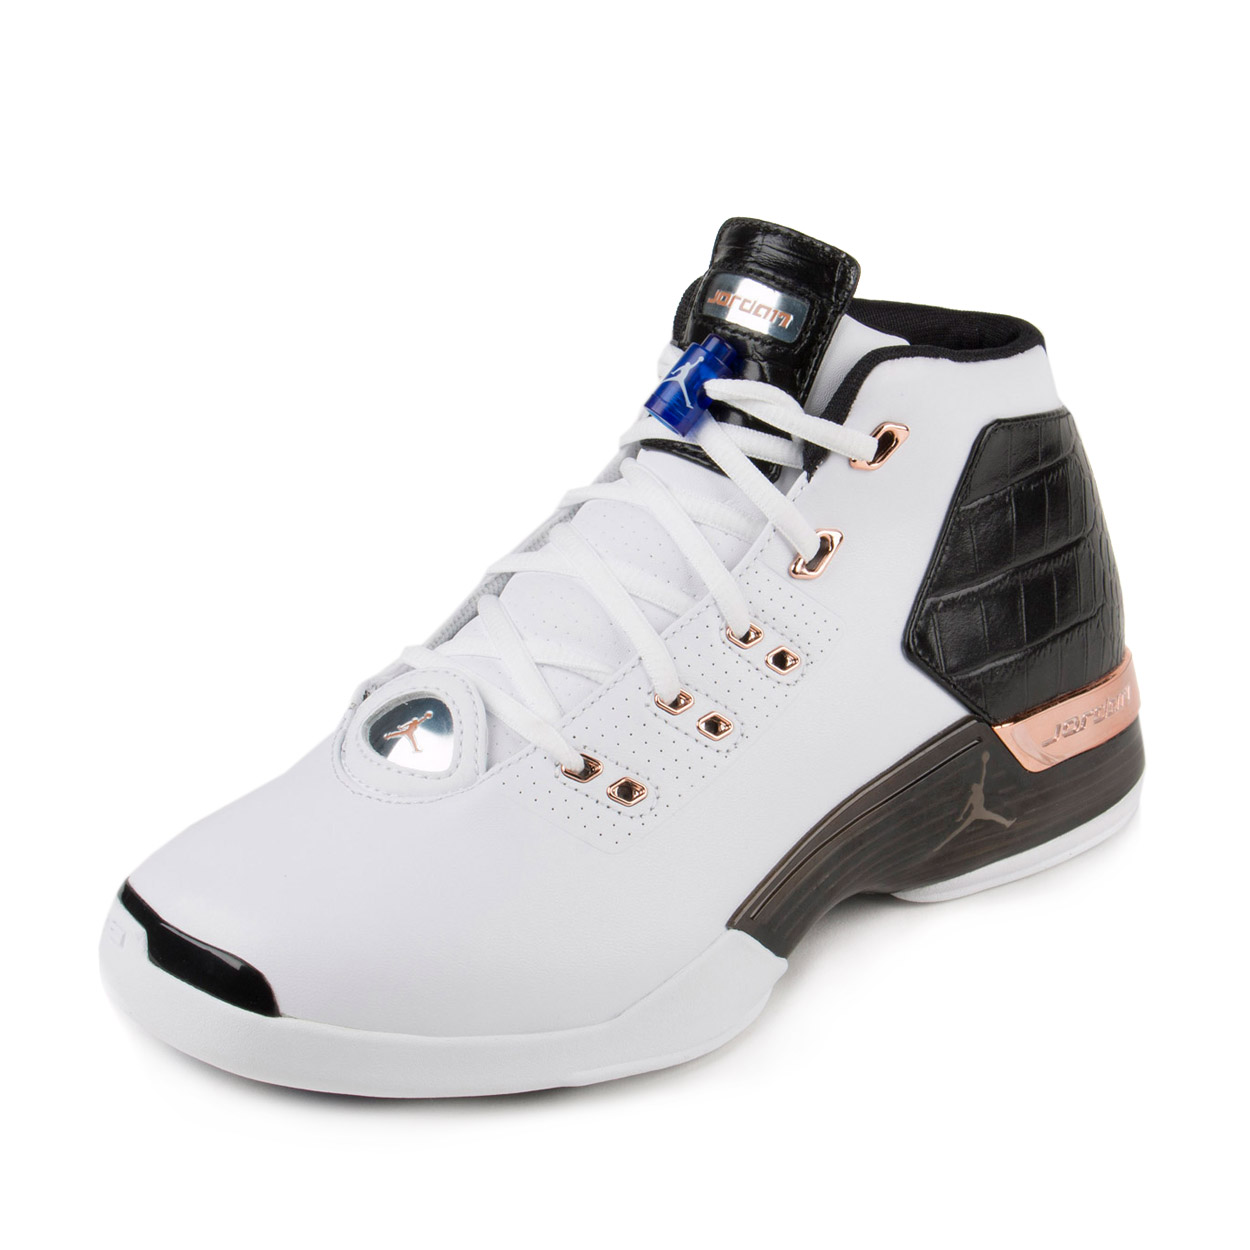 Air Jordan 17 + Retro - 832816 122 Shoes that are both comfortable and beautiful and eye-catching